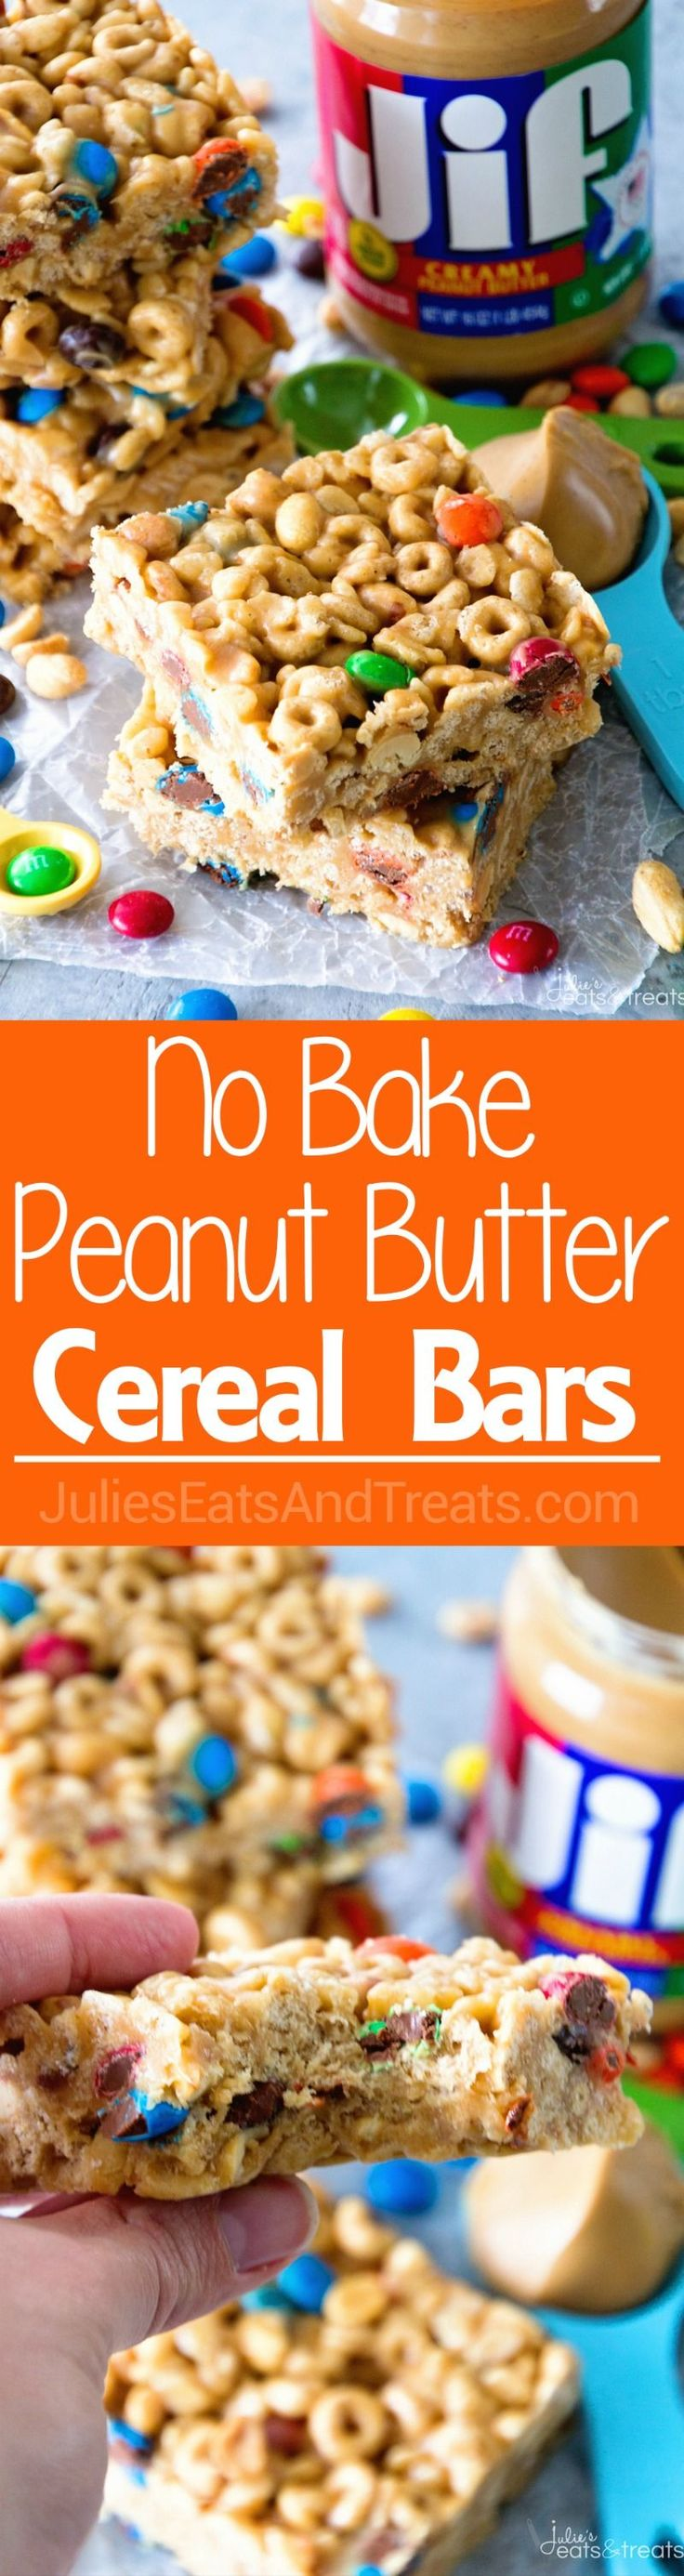 34 best cereal images on pinterest breakfast cereal cereal and no bake peanut butter cereal bars easy no bake bars with cheerios rice ccuart Choice Image